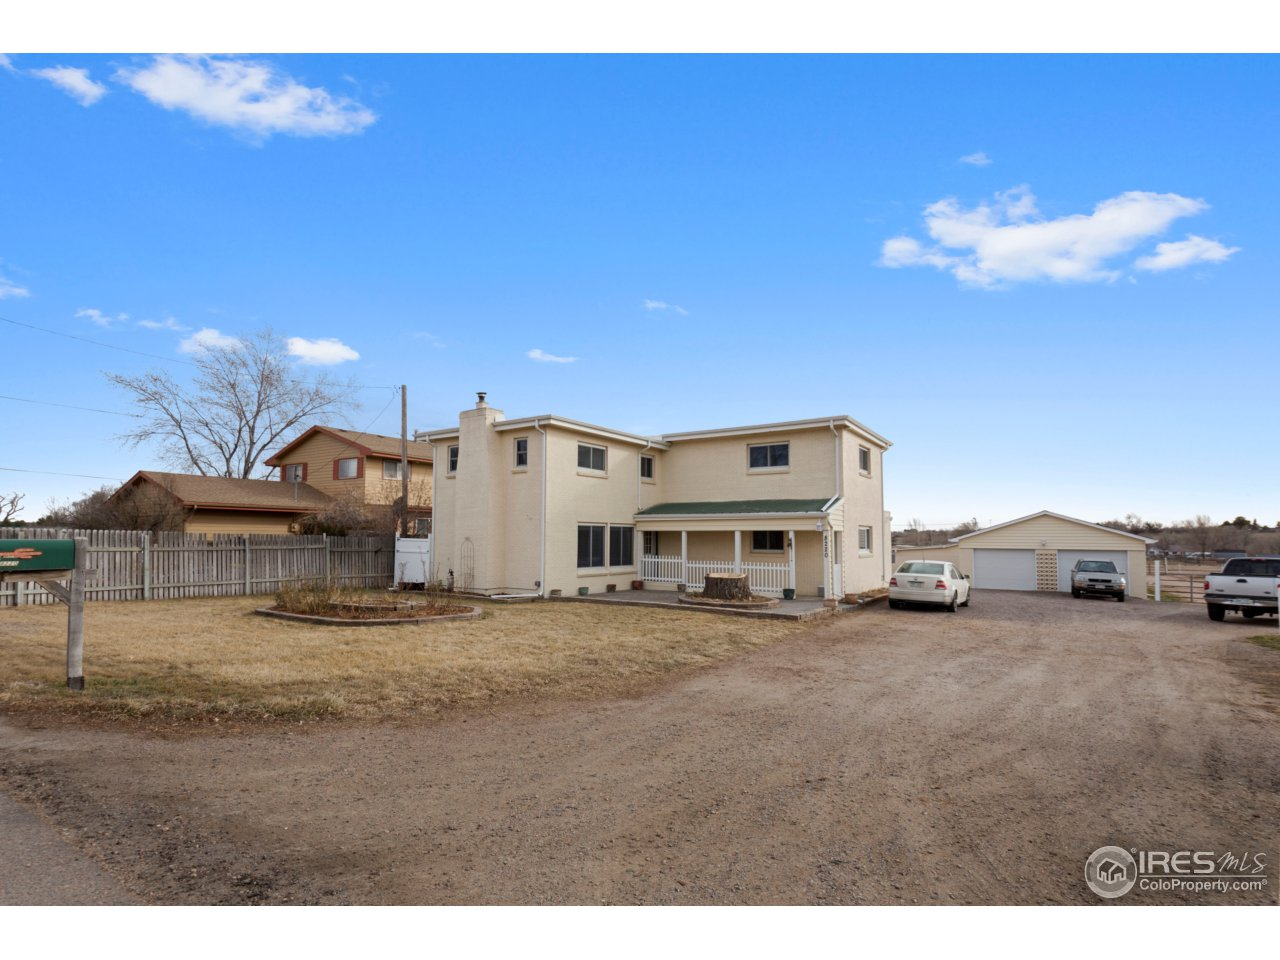 8220 W 106th Ave, Westminster CO 80021